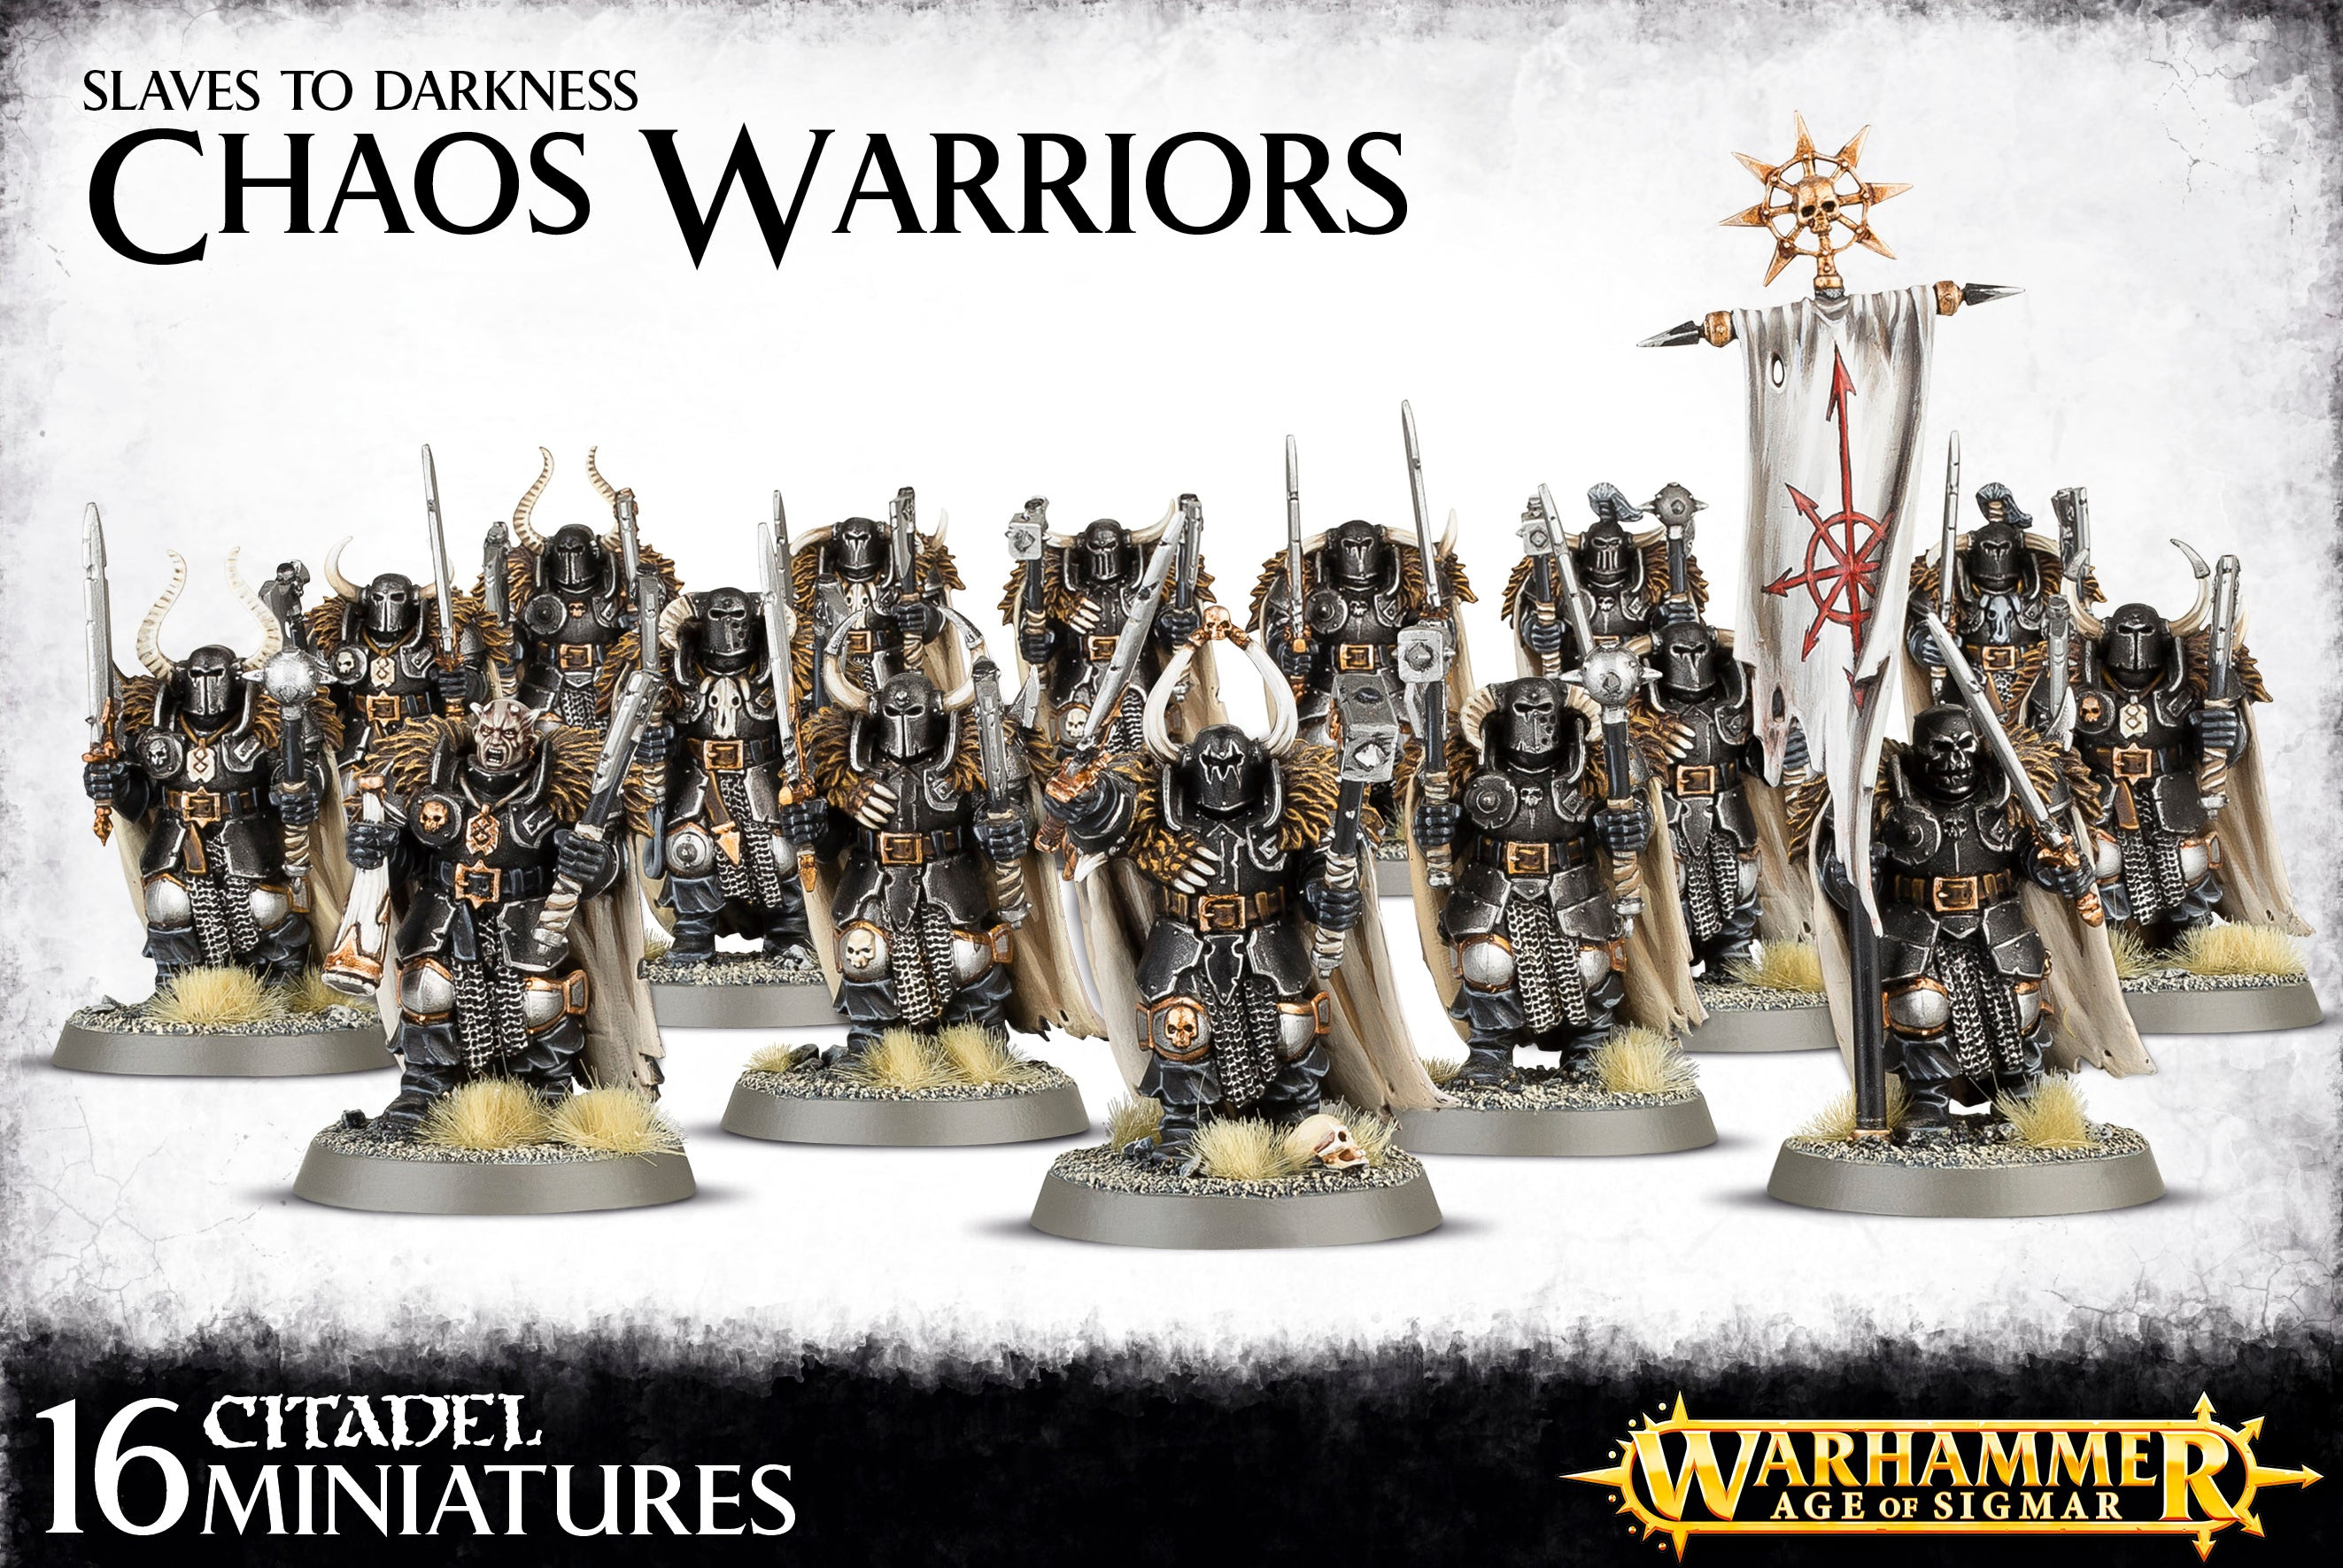 Chaos Warriors Regiment (Slaves to Darkness) | Mythicos